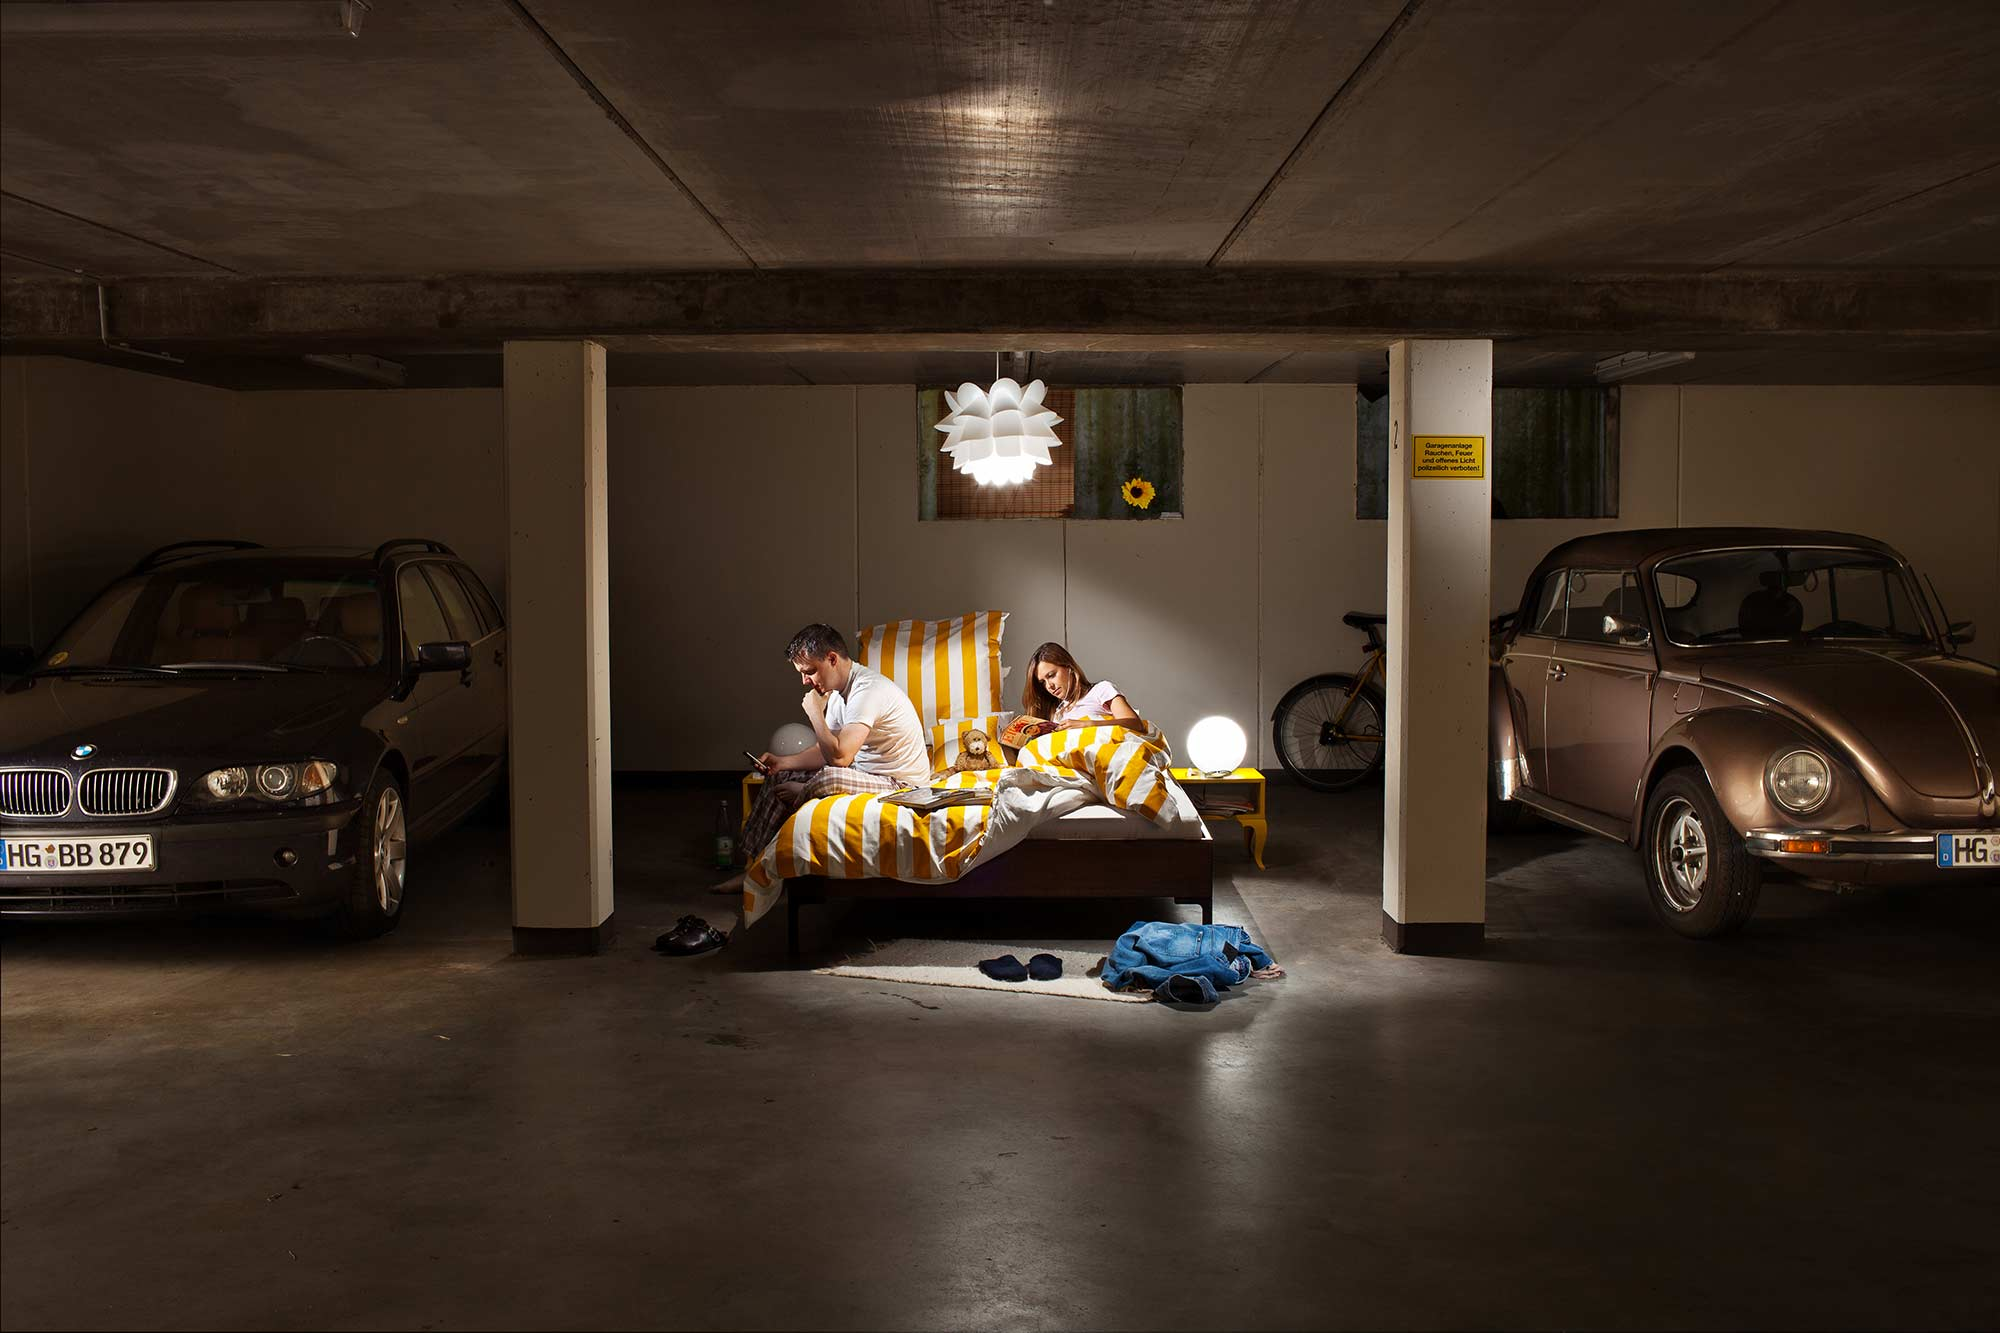 Fritz Philipp Fotograf Frankfurt Sleeping In The Garage 2000